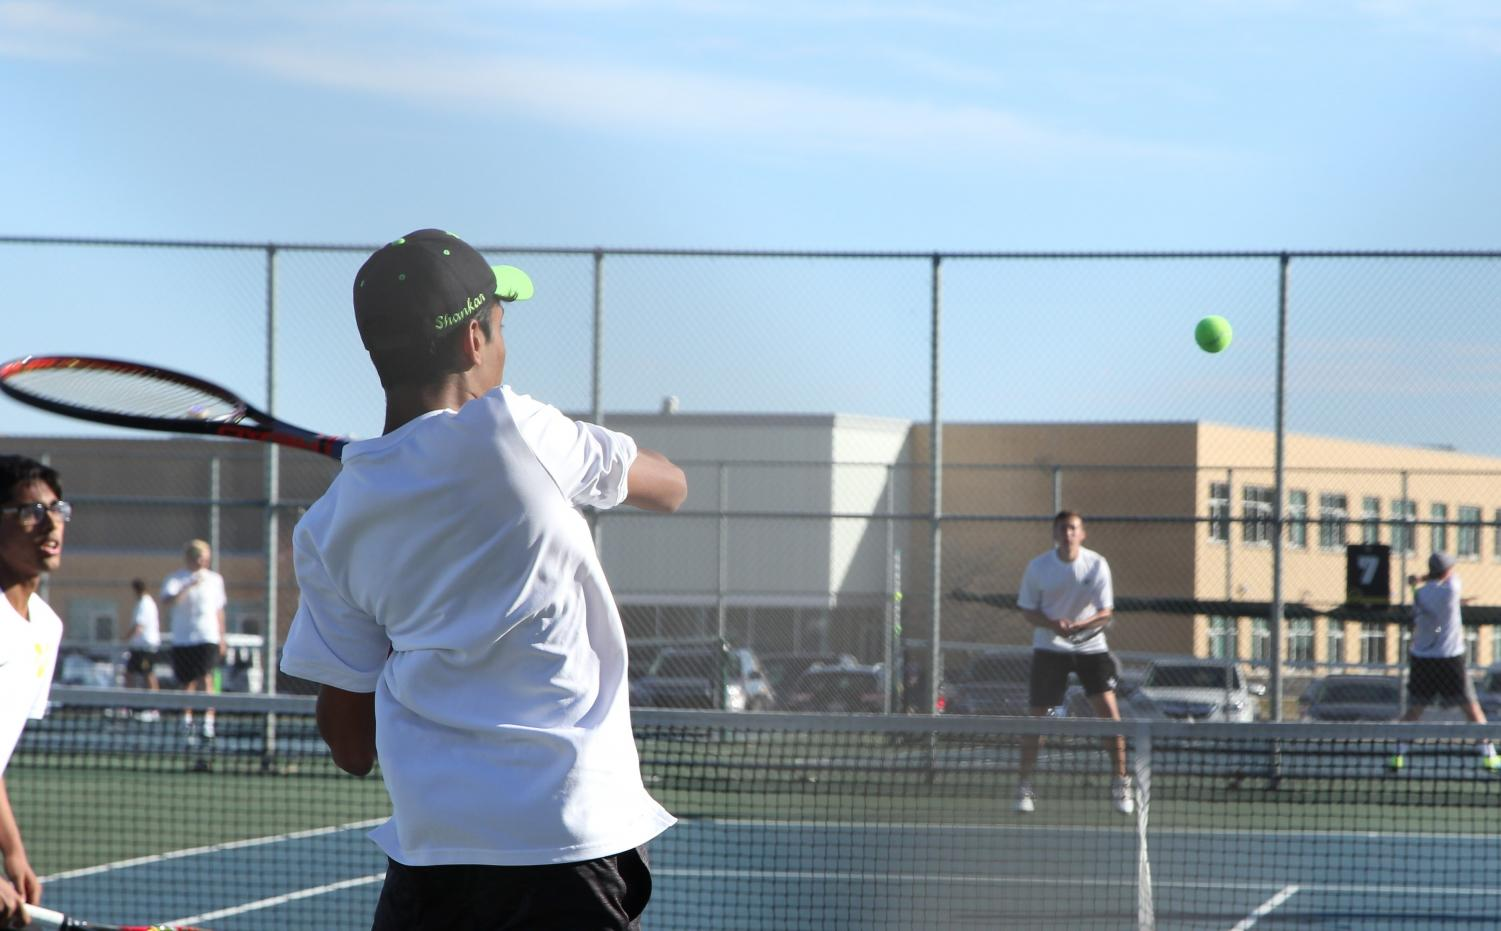 Sophomore Shankar Jambunathan with doubles partner Tanay Vutukuru during their match against St. Charles North on April 9th.